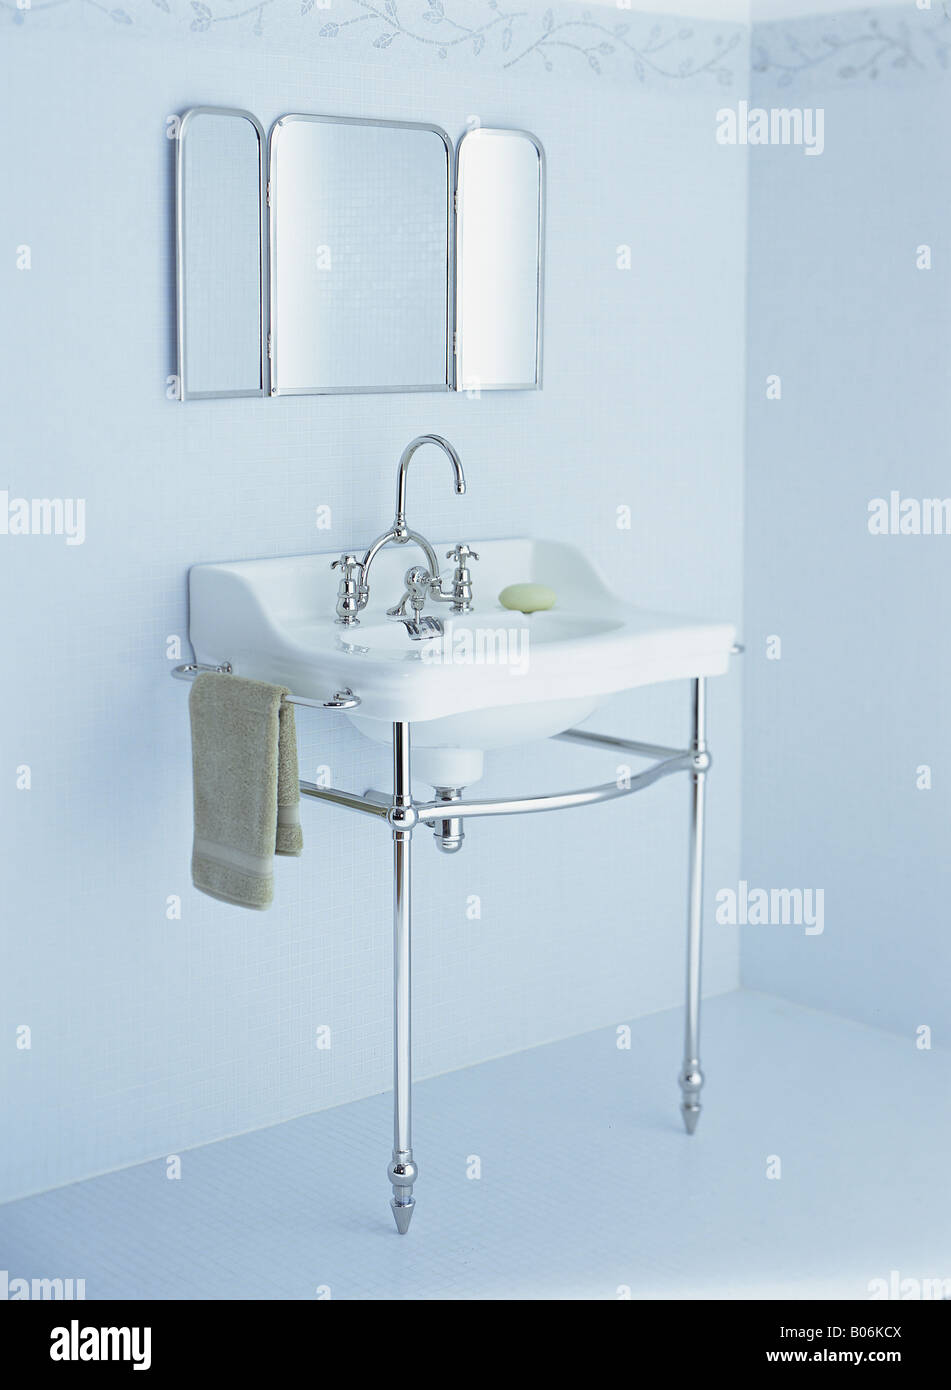 Blue Tile Bathroom Stock Photos & Blue Tile Bathroom Stock Images ...